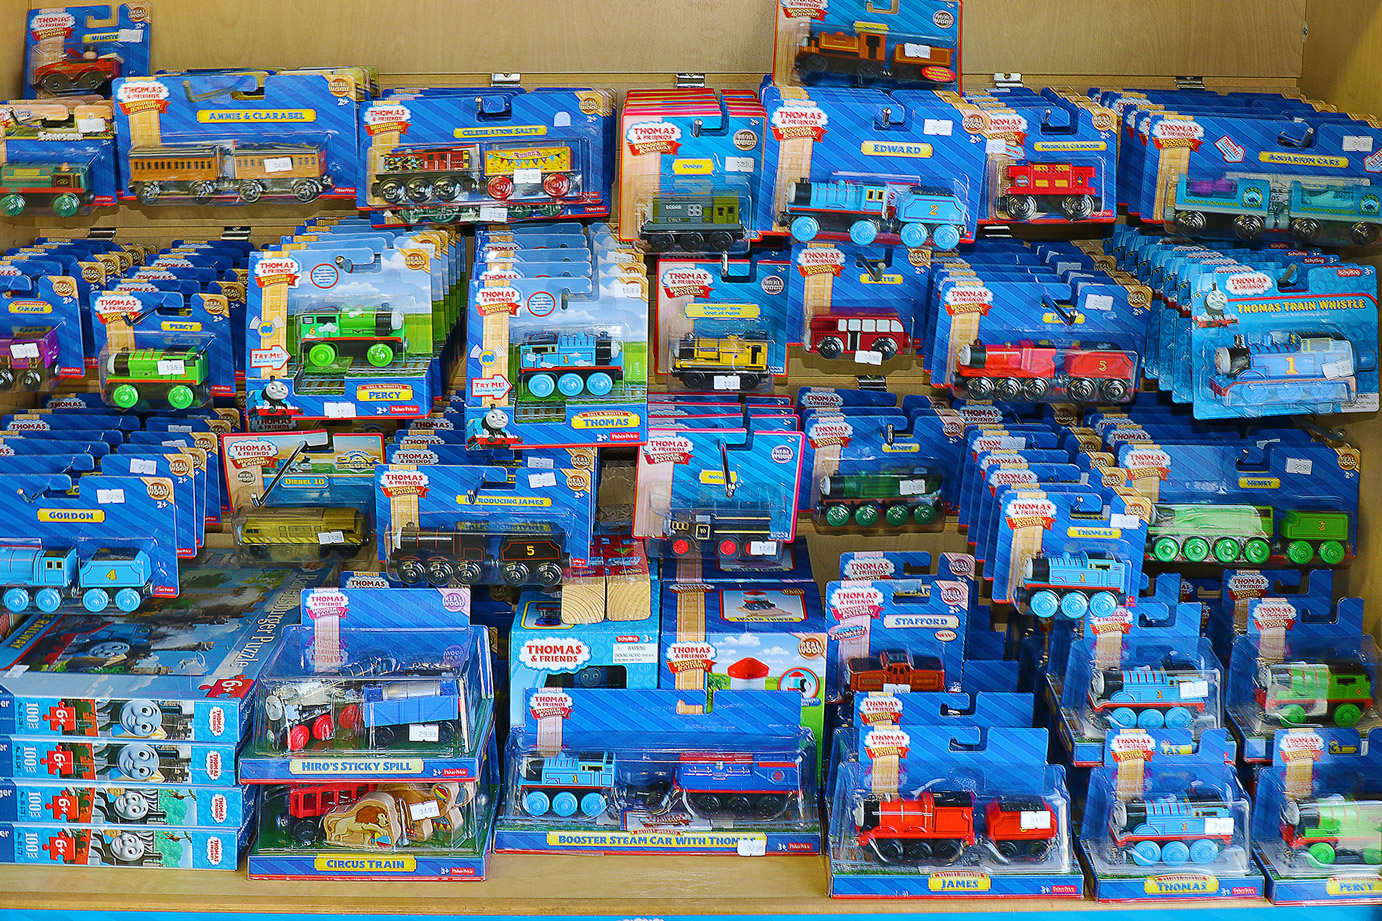 Trains-Thomas-Toys.jpg